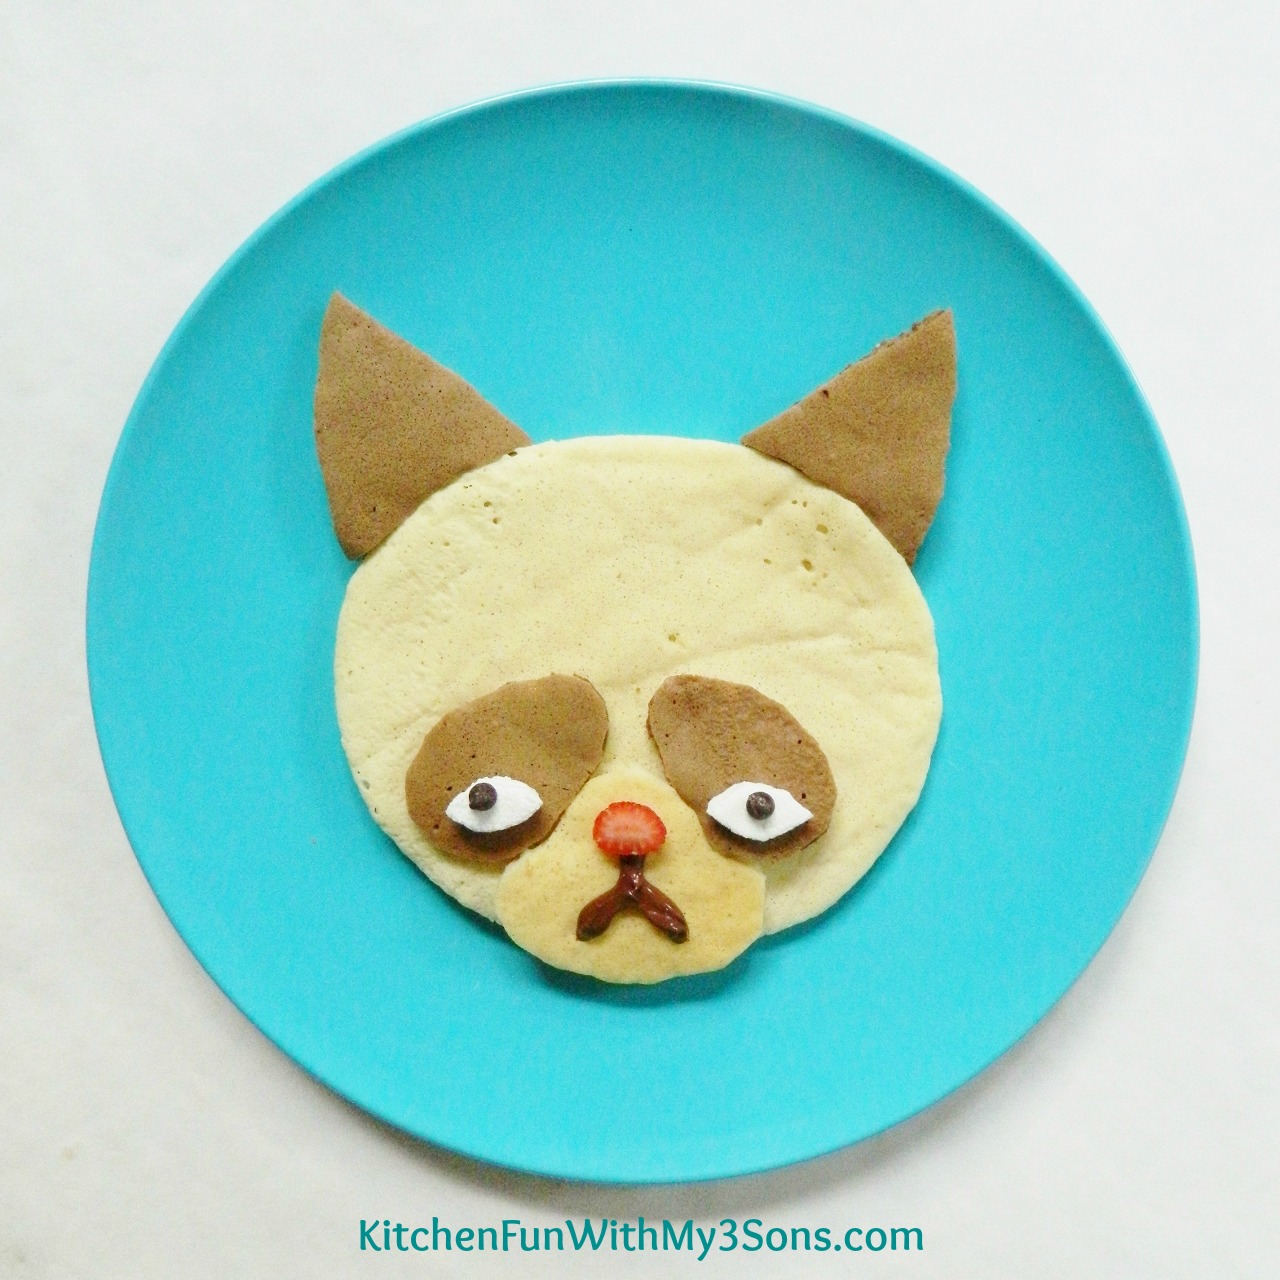 Web Coolness: Grumpy Cat pancakes, a high-fashion rainbow loom dress, birth photos on Facebook, and more.